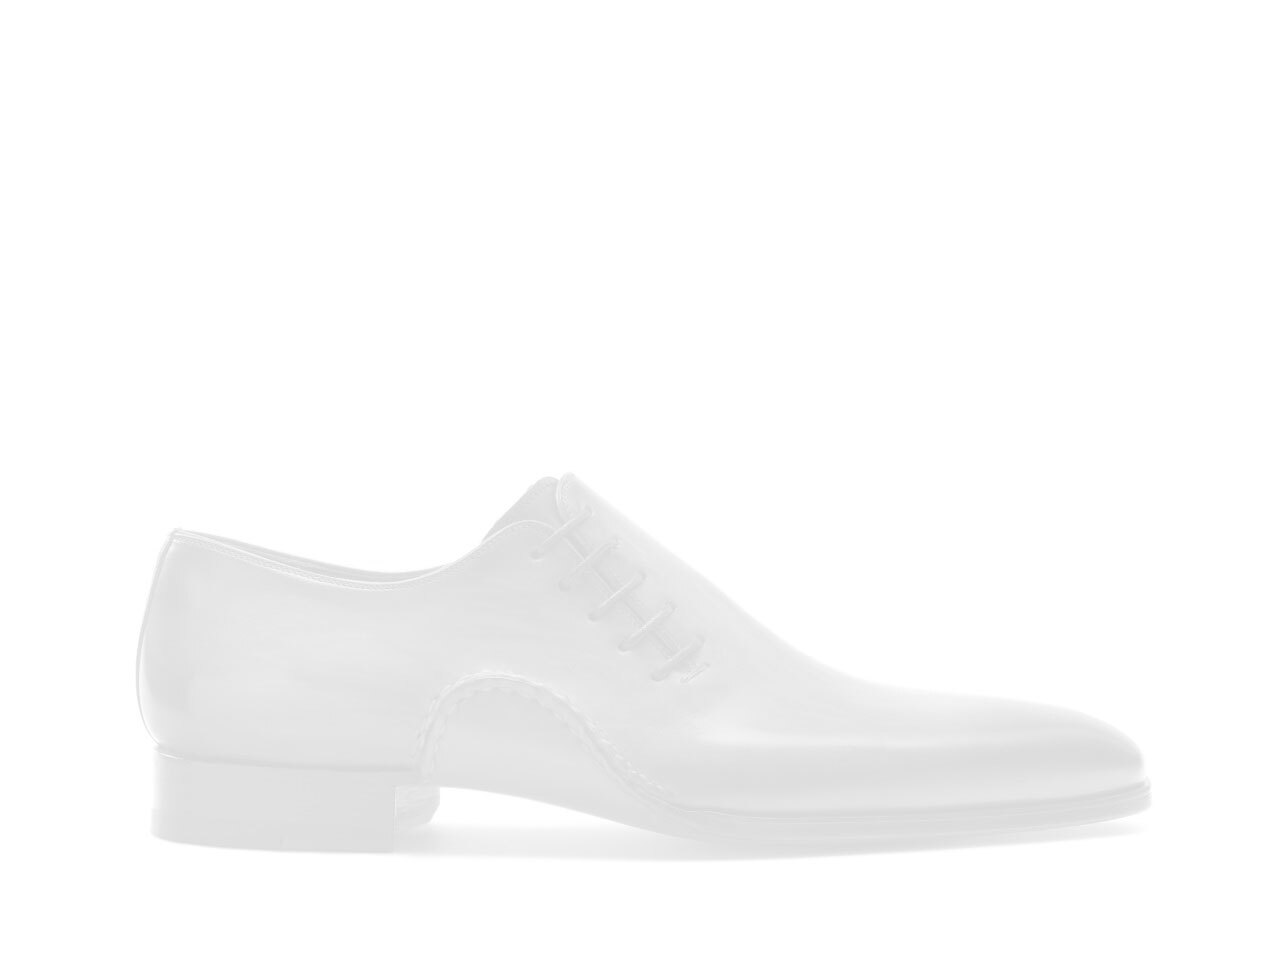 Side view of the Magnanni Marlow Tinto Men's Sneakers